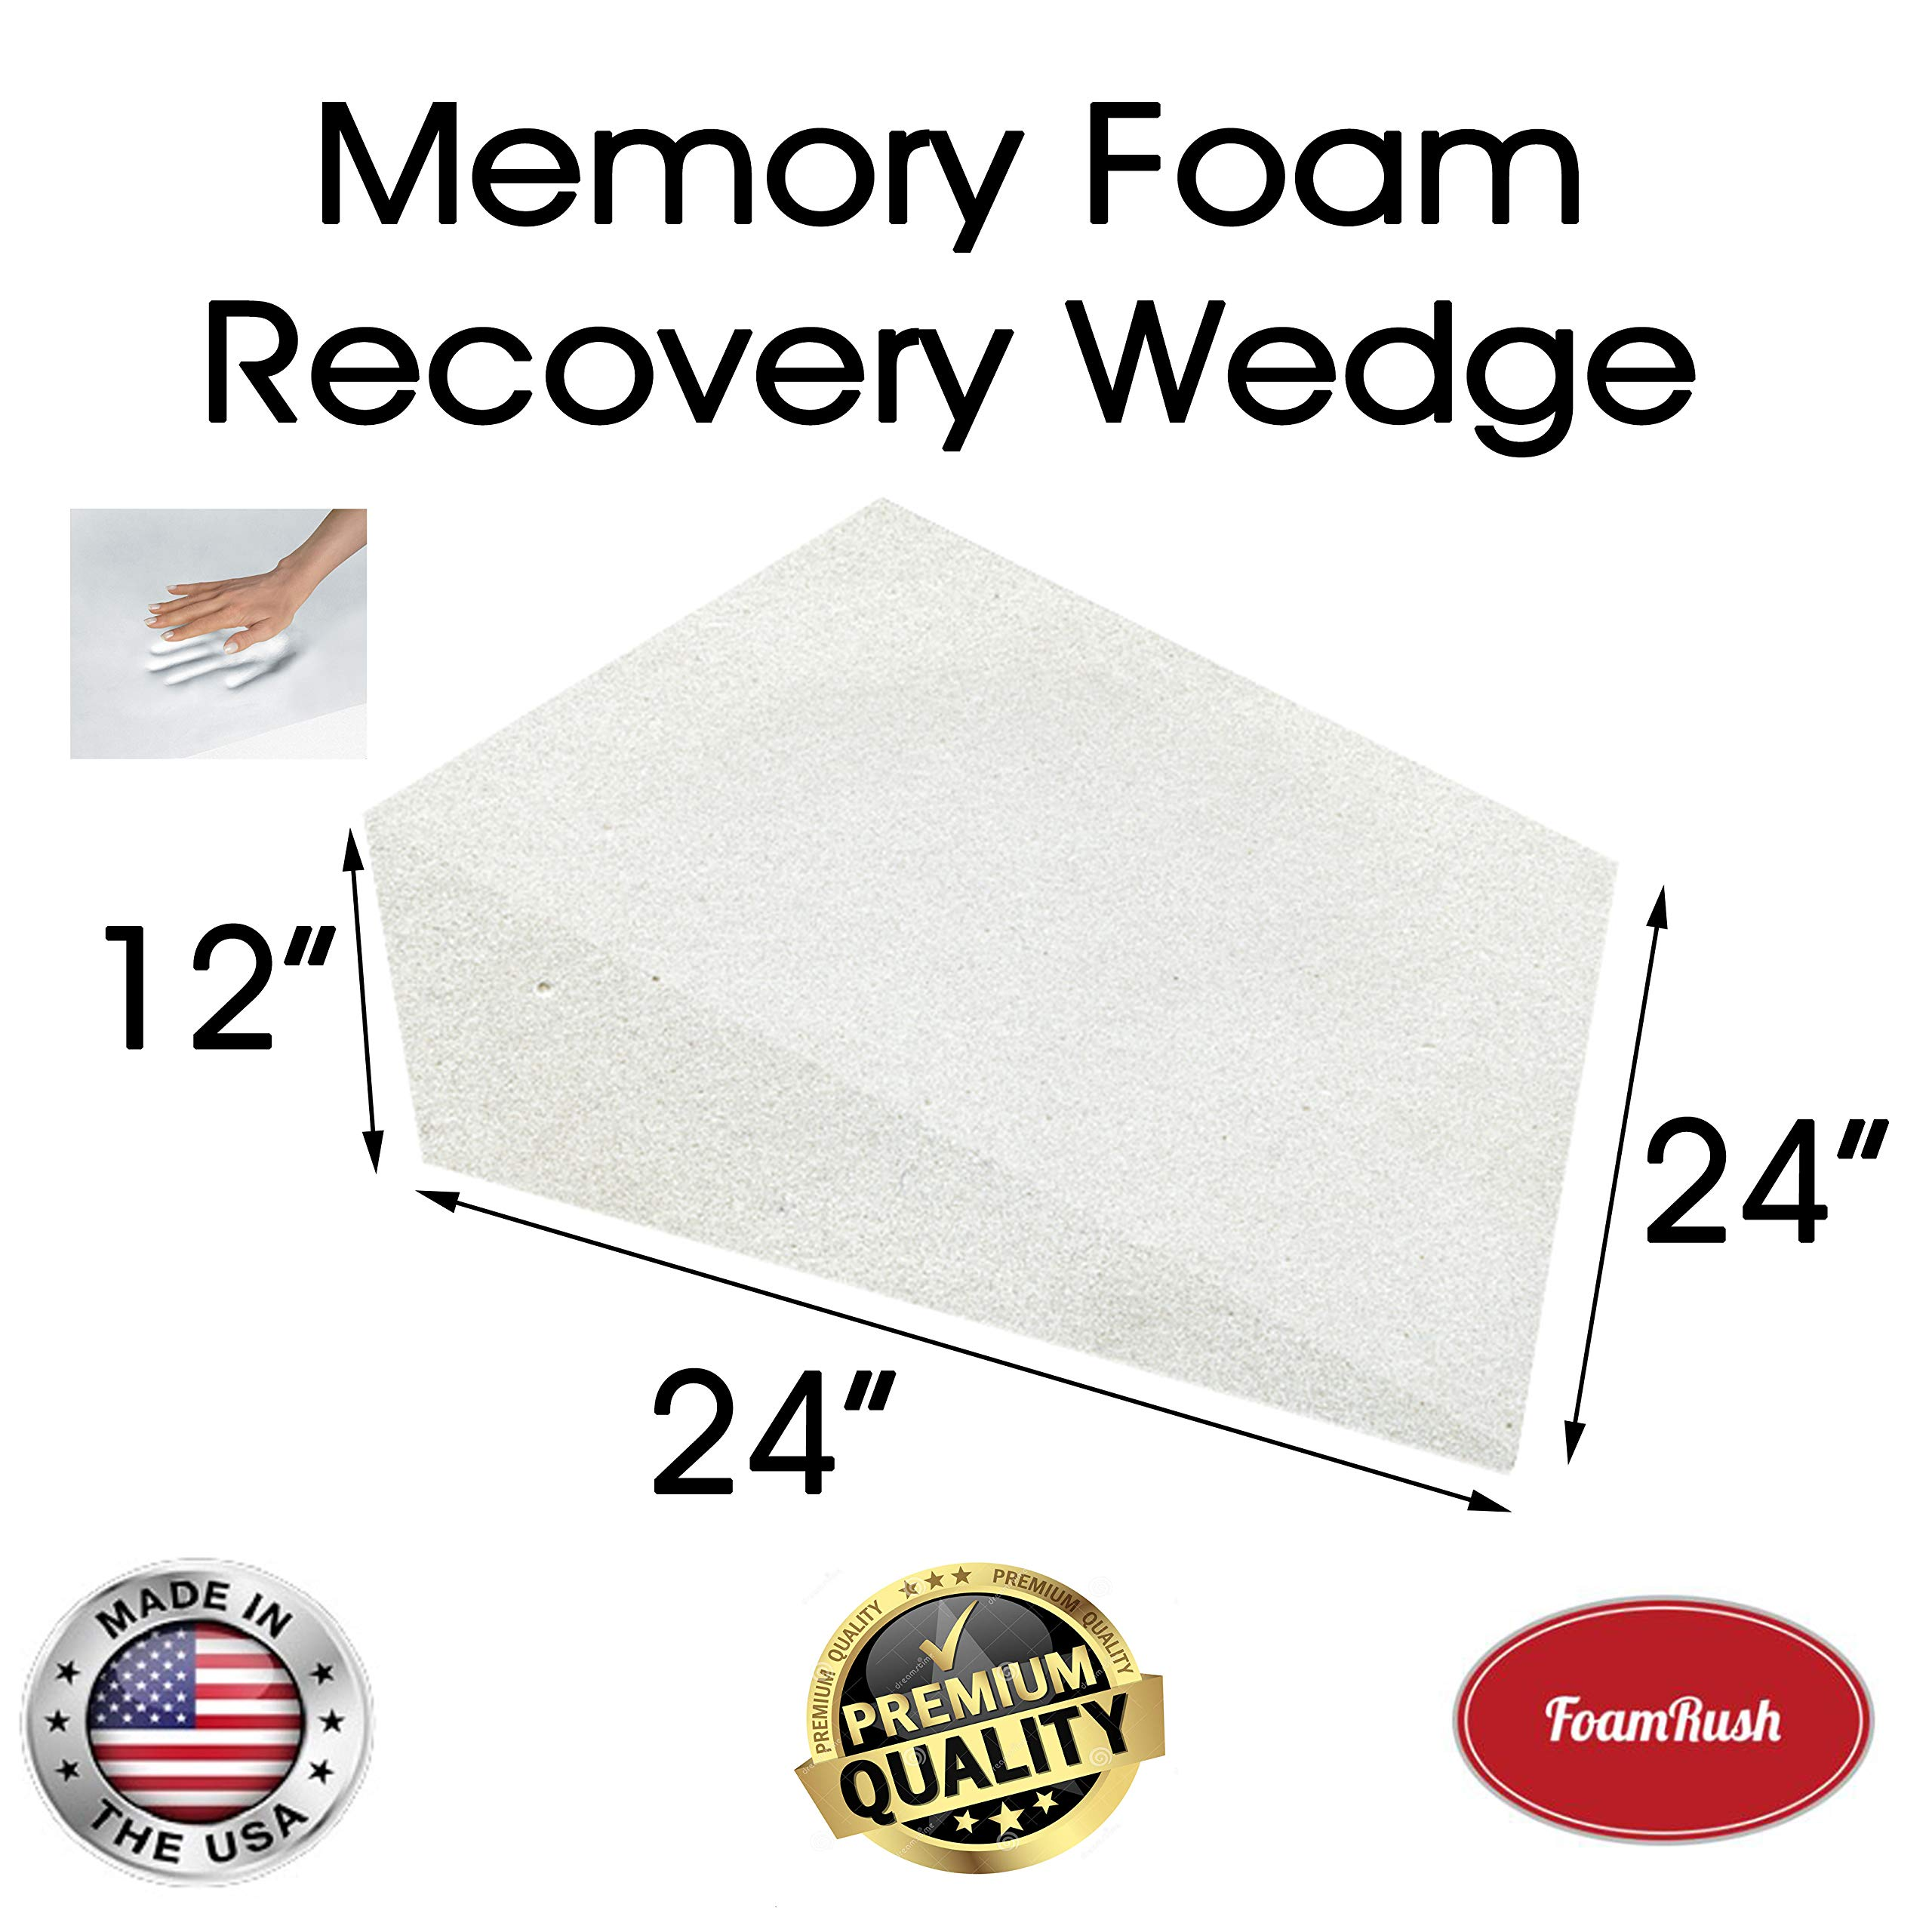 FoamRush 12'' H x 24'' L x 24'' W Premium Quality Therapeautic Memory Foam Bed Wedge Cushion Replacement Best for Sleeping, Reading, Rest or Elevation (Relives Acid Reflux, Snoring & Back Pain) by FoamRush